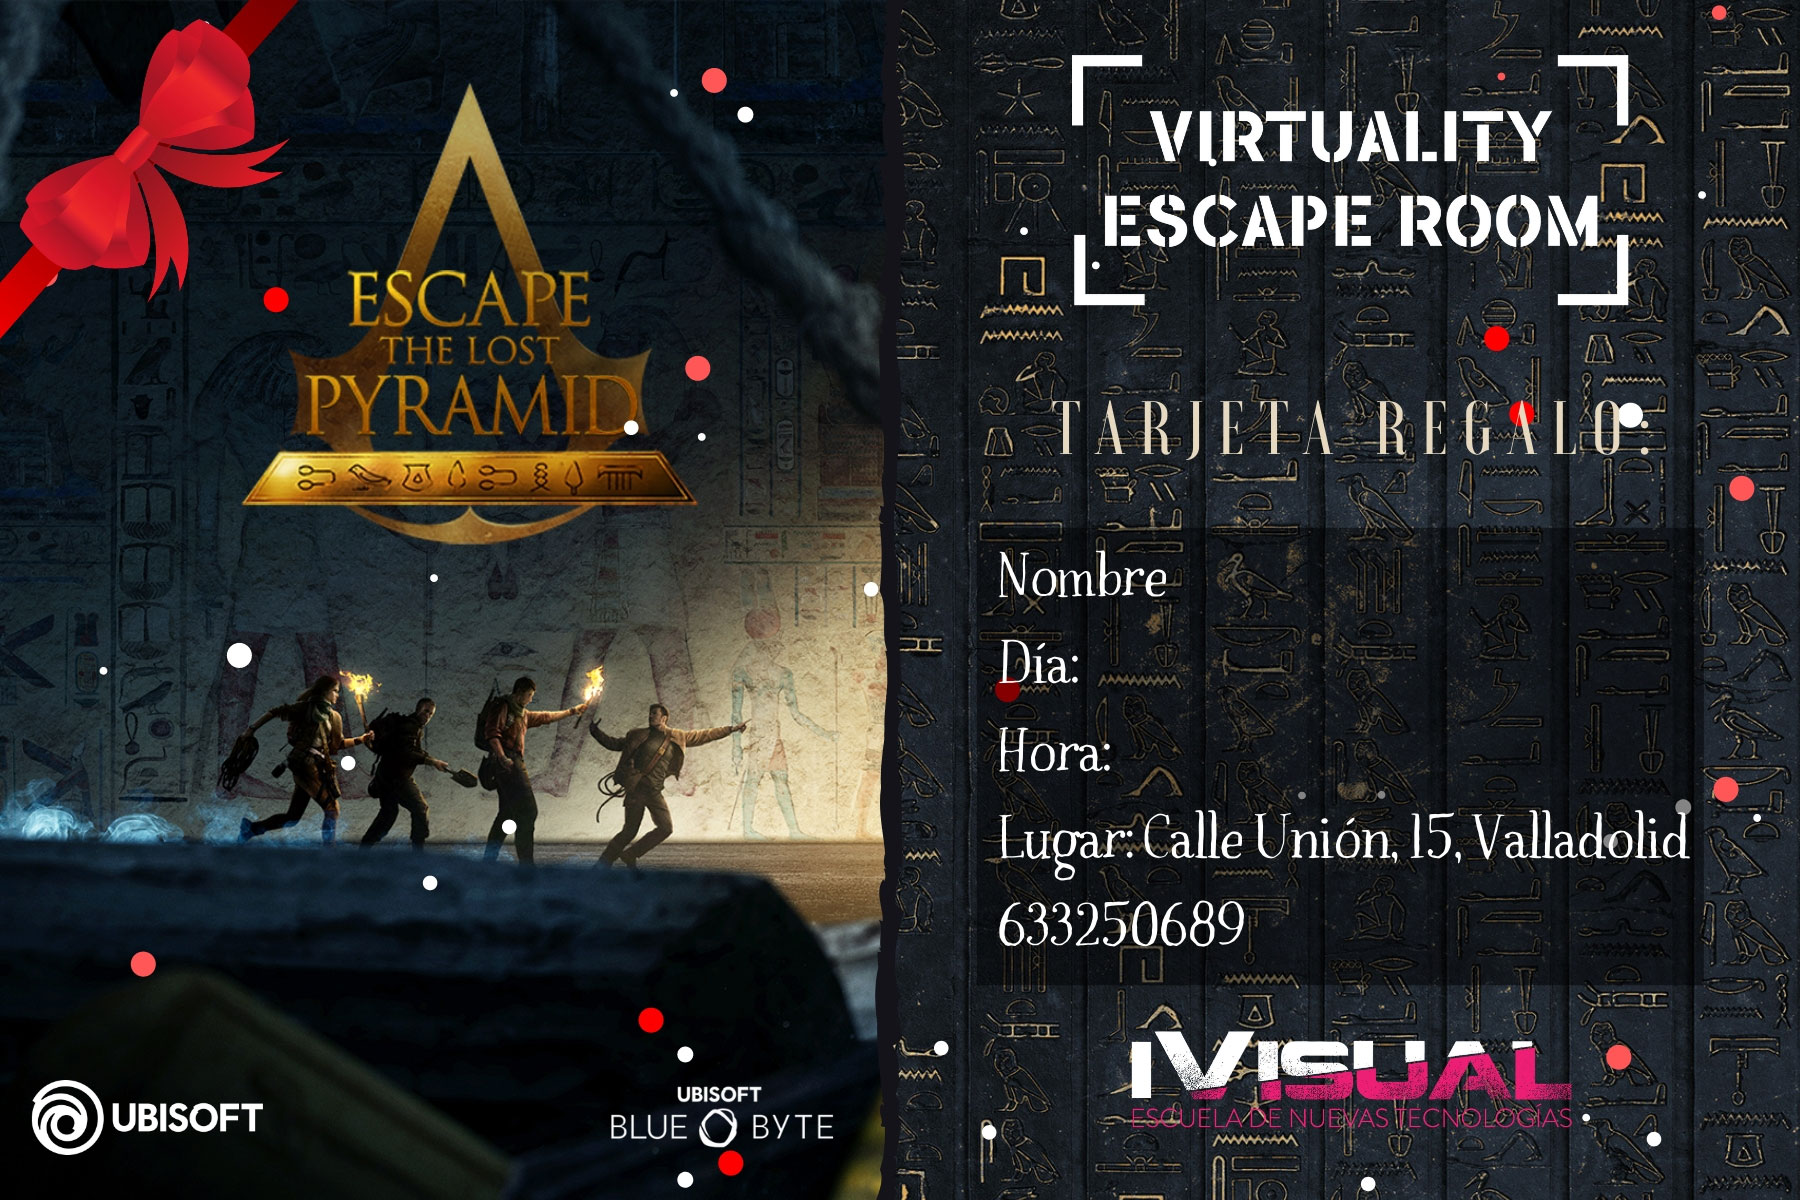 Tarjeta-regalo-Escape-The-Lost-Pyramid-Virtuality-Escape-Room